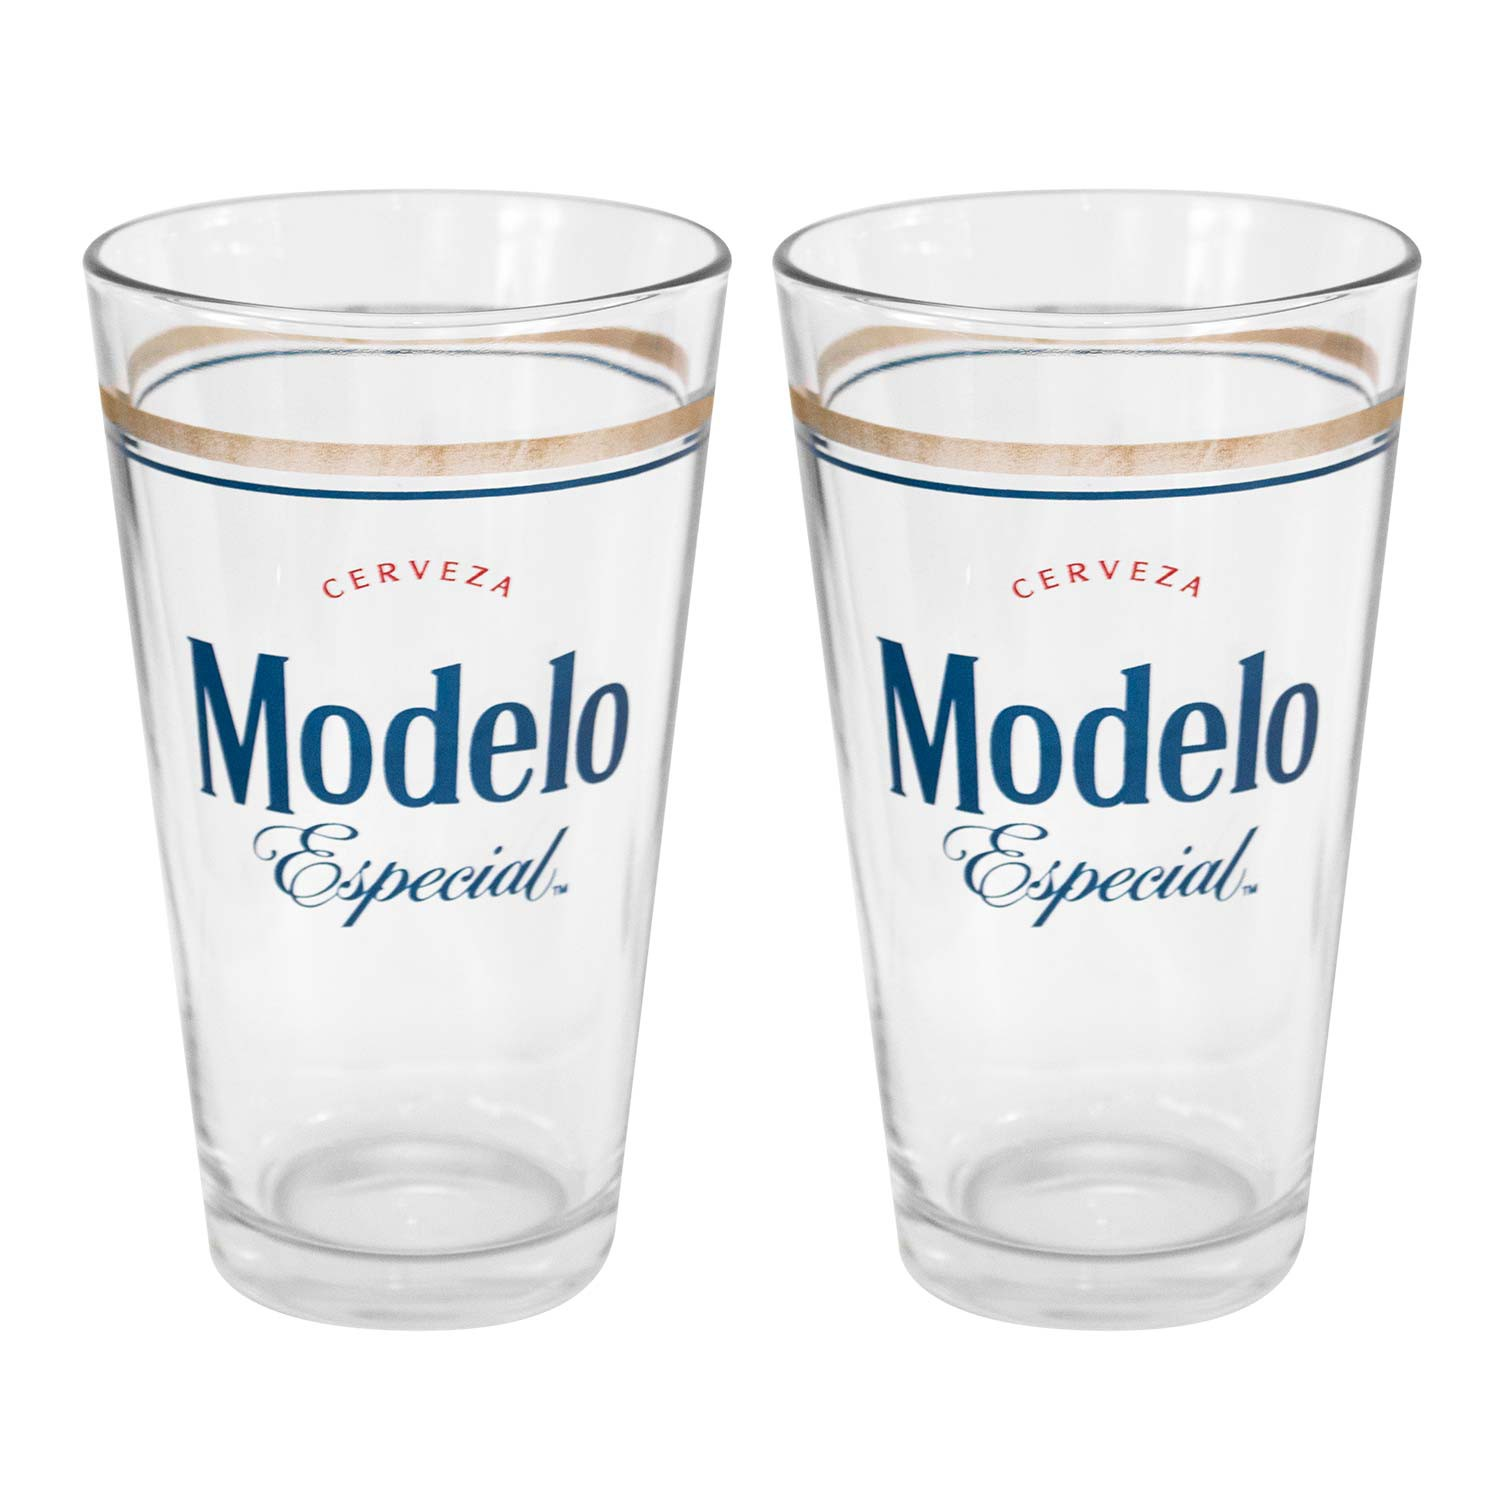 Modelo Especial 2 Pack Pint Glasses